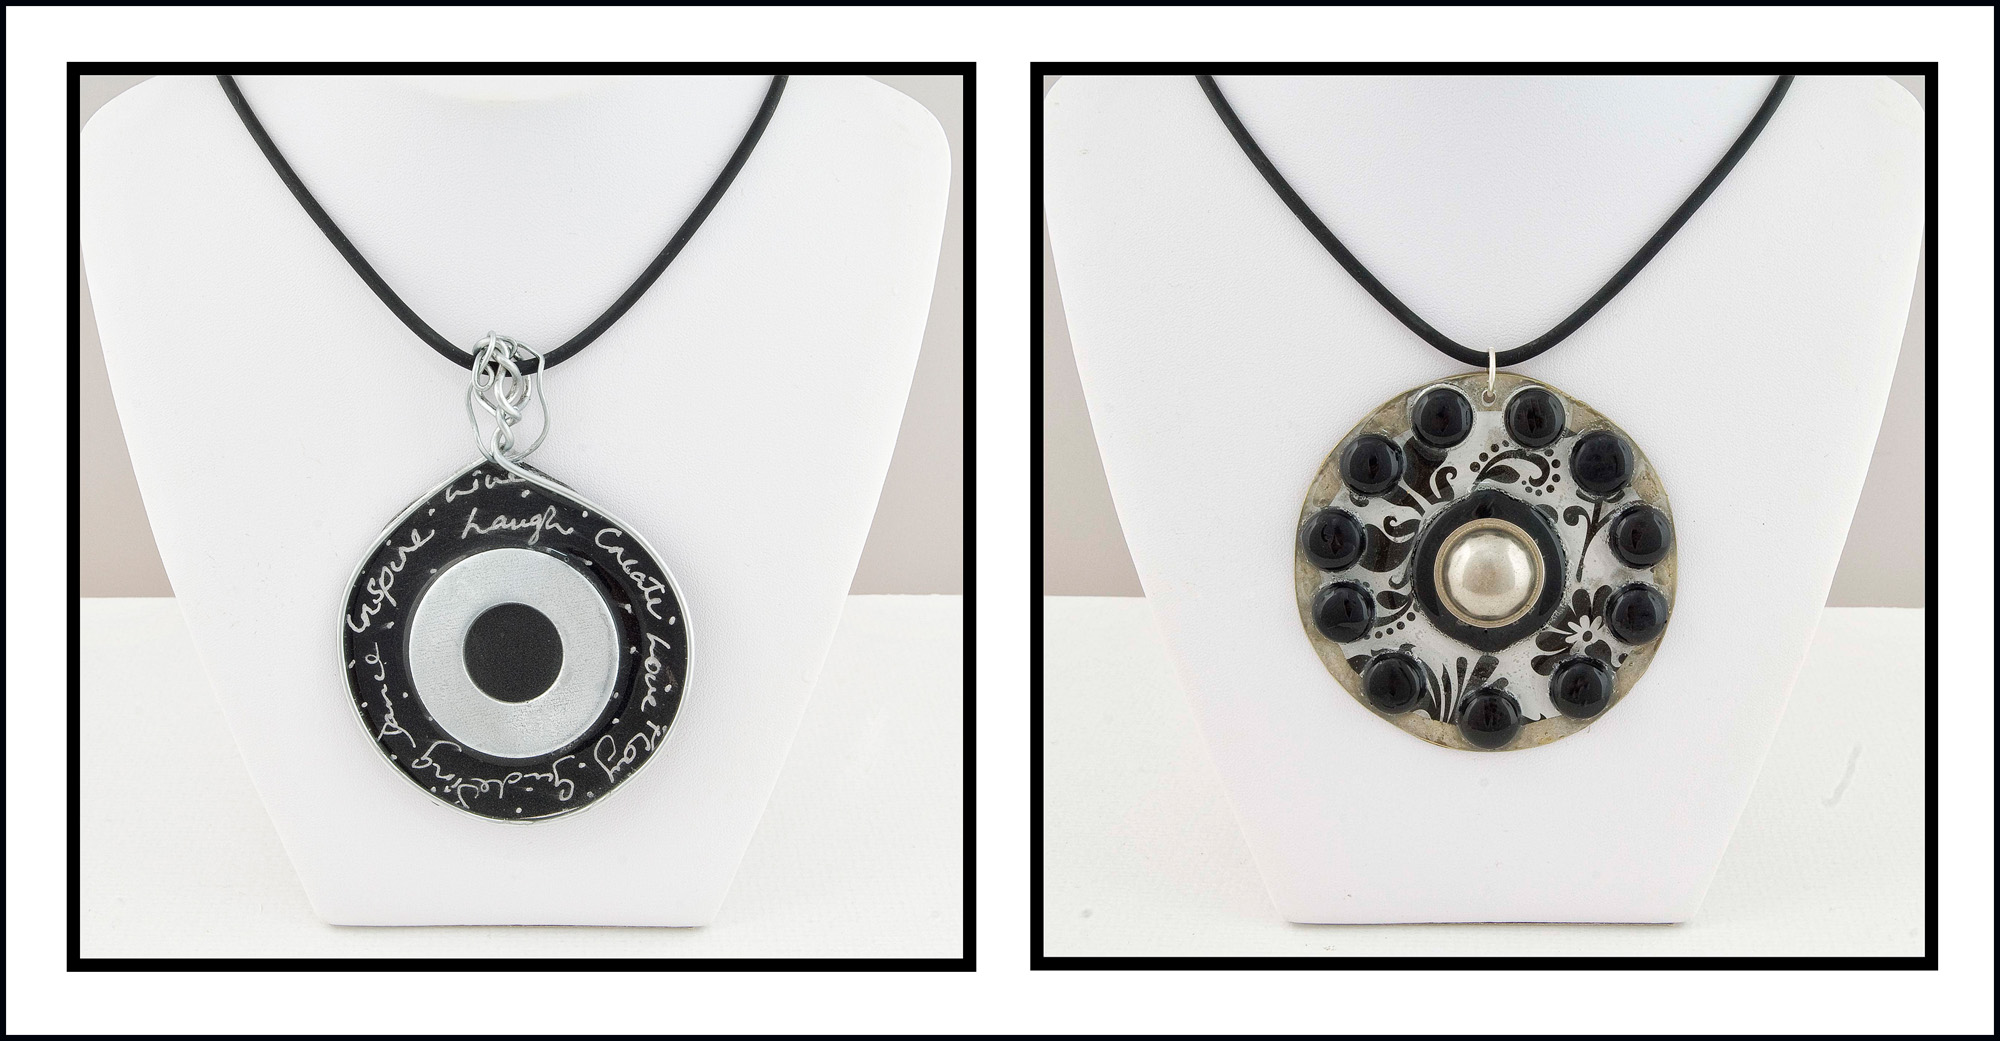 The pendant on the left is made with galvanised steel wire, a large metal  washer, resin, and black card which I've written on with a silver pen. The pendant on the right has a brass base which I've edged with German silver enamel. The centre contains a circular disk of black and white floral wrapping paper edged with black screw caps, The centre piece has a large chrome knob that was intended to be placed on the end of curtain rods, and I've set the knob on a black rubber washer. I reckon these pieces are quite cool and I'm hoping Lucy, my eldest, will take them in and give them a good home.